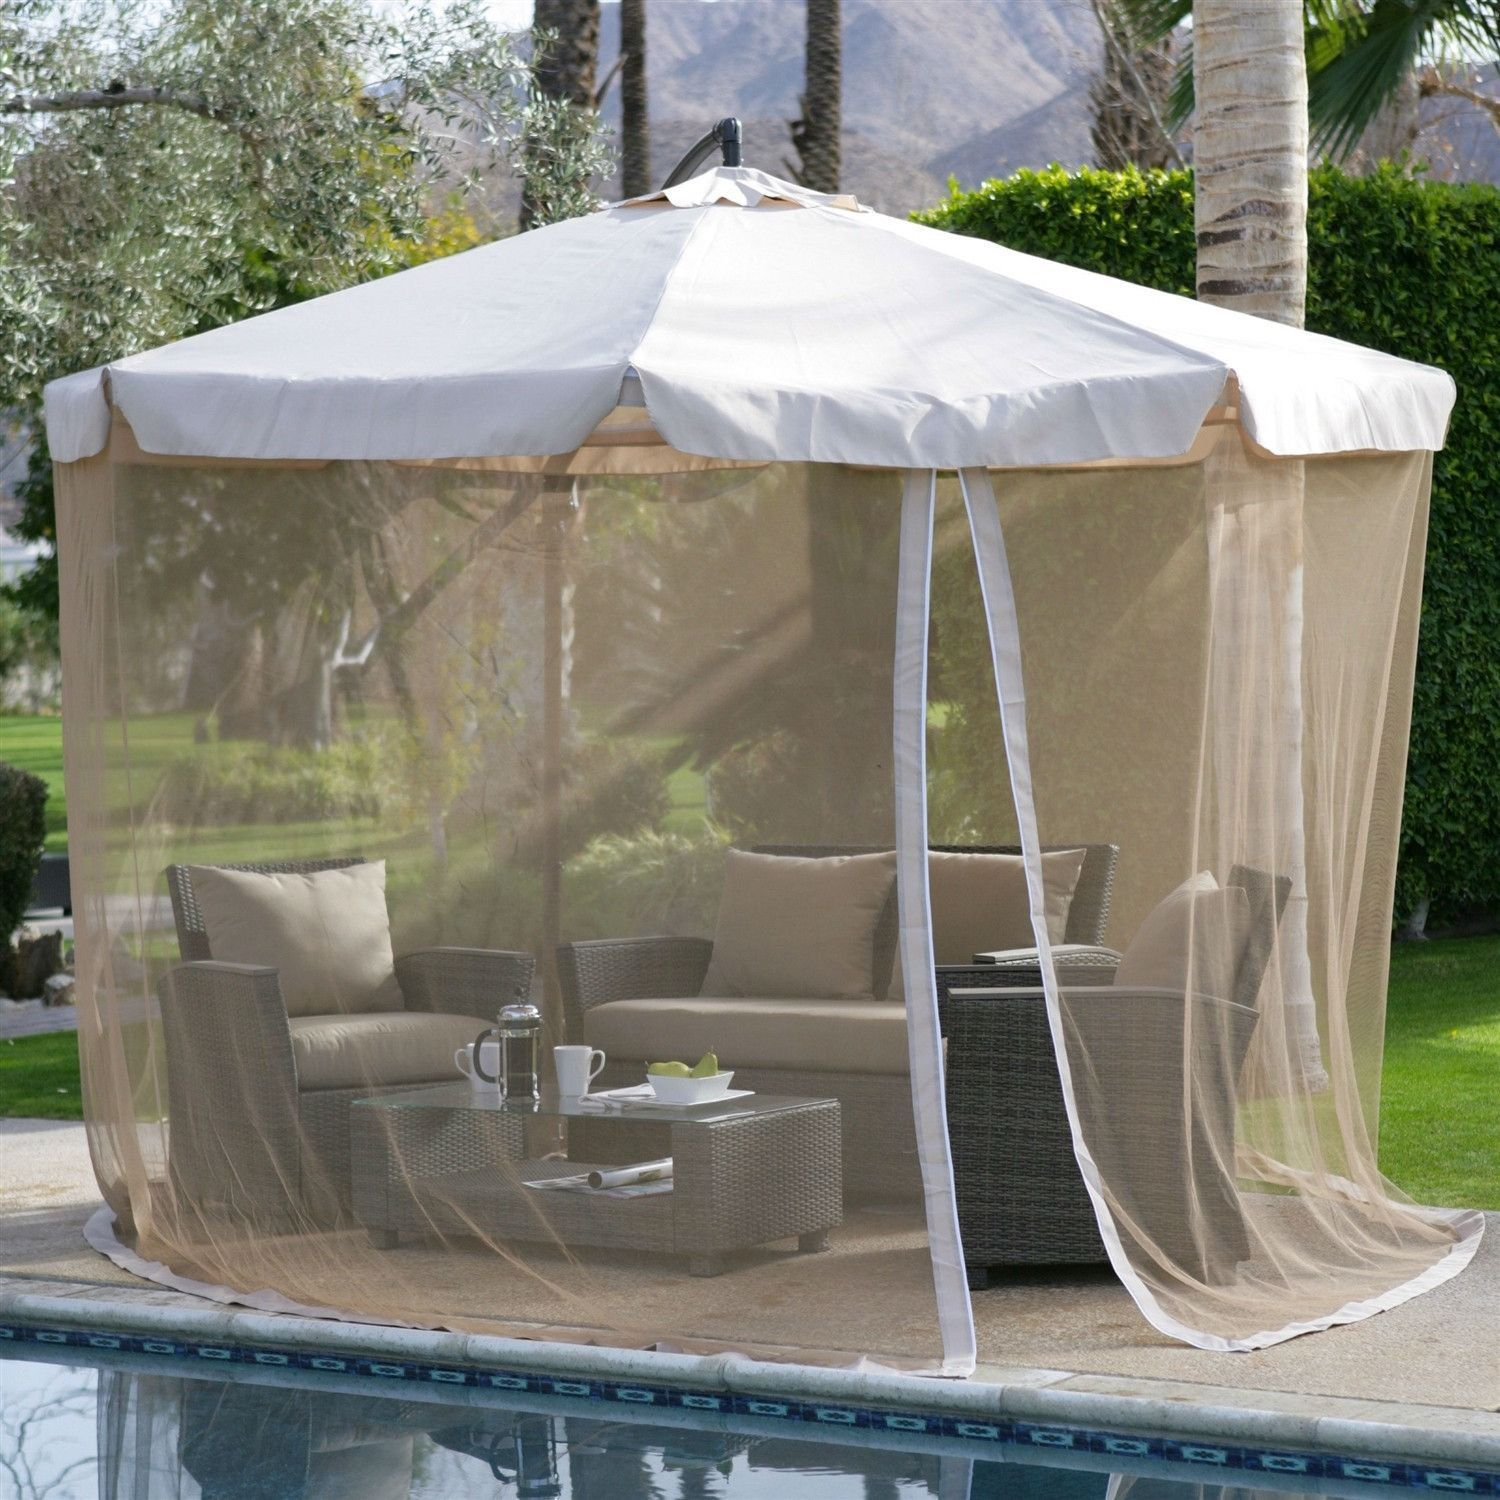 Modern 11 Ft Cantilever Offset Patio Umbrella In Tan With Removable Netting